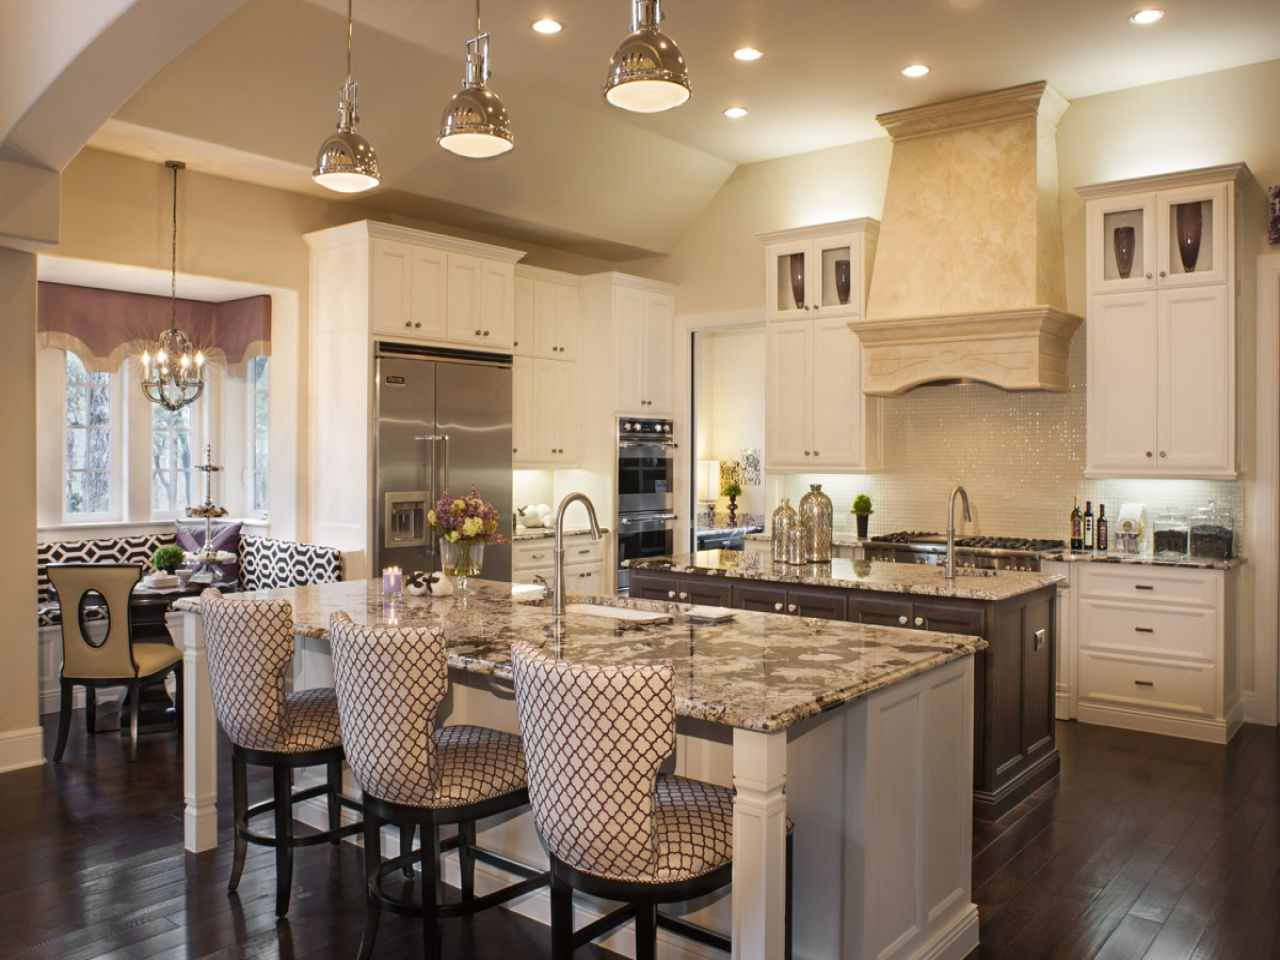 Open Kitchen Design With Large Island House Plans Home Plans With Large Kitchen Contemporary Kitchen Island Custom Kitchen Island Kitchen Island With Seating